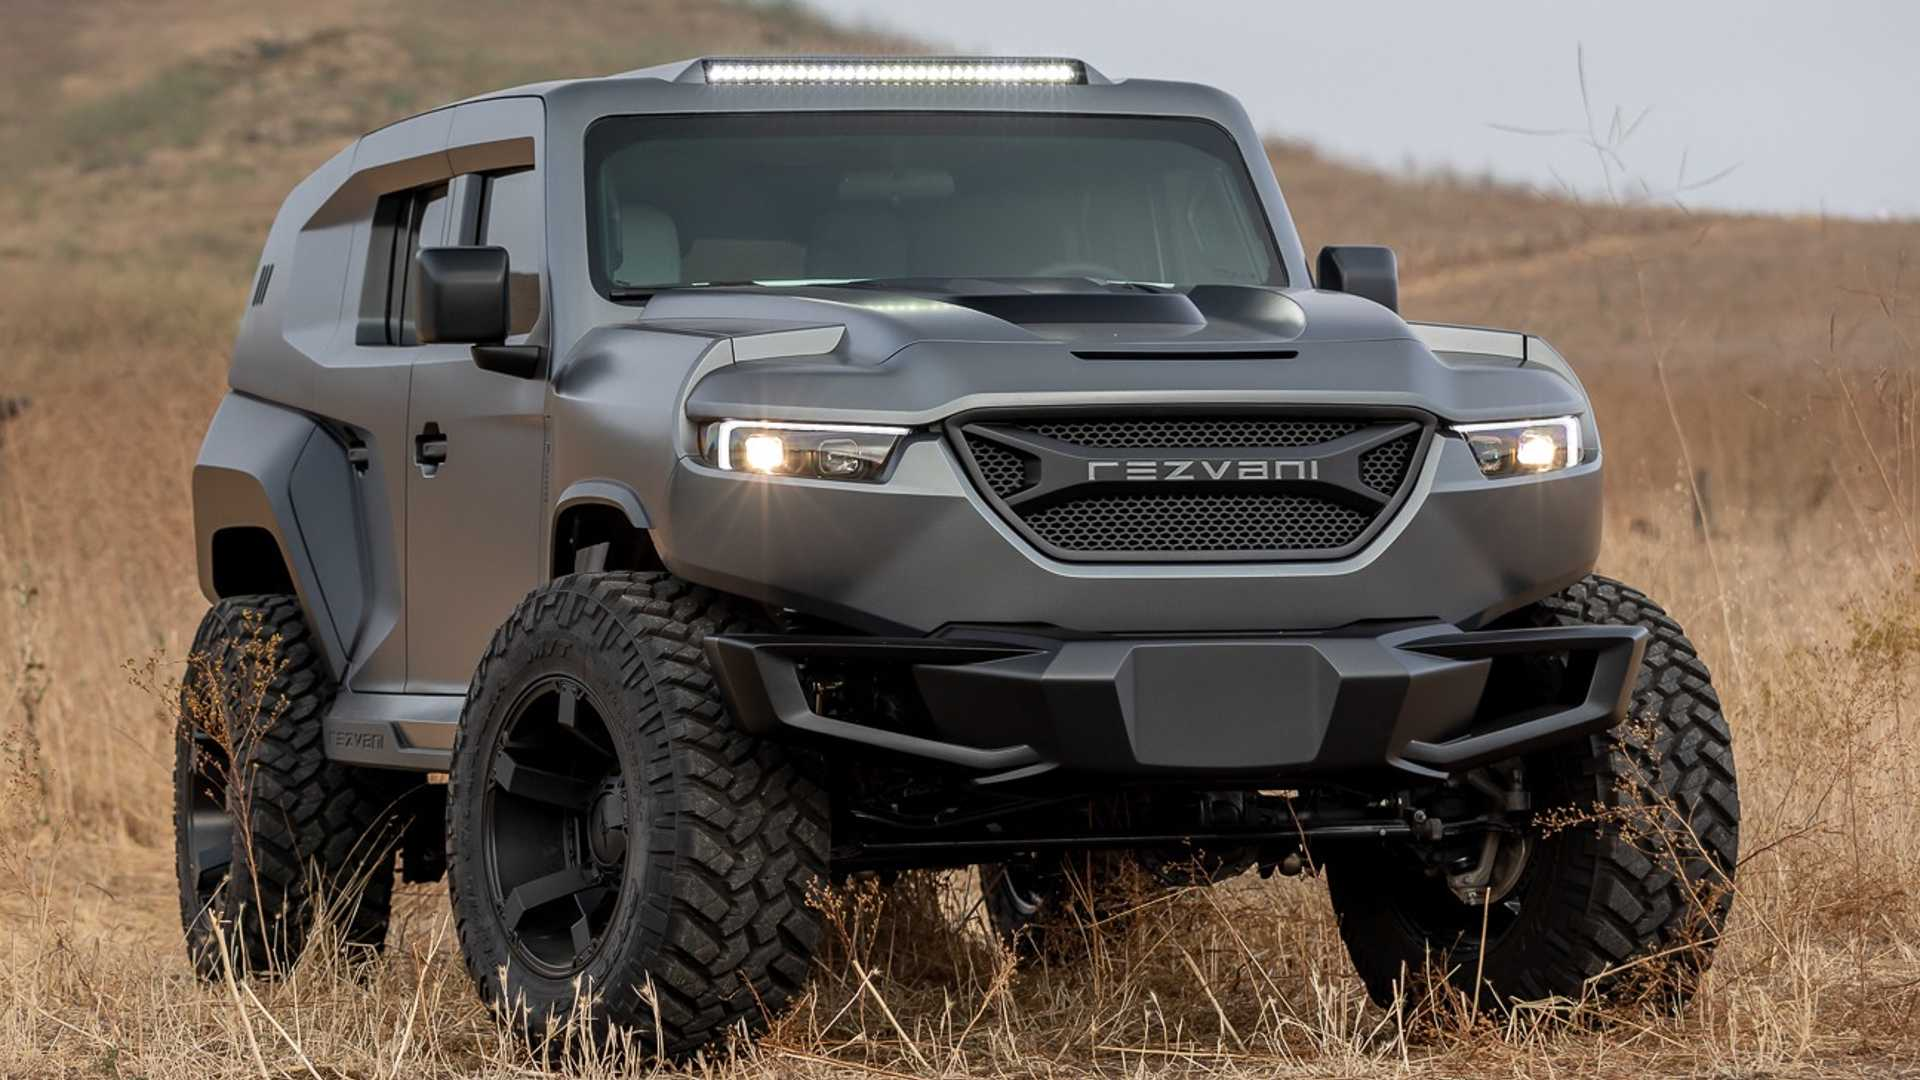 California-based supercar manufacturer Rezvani has held an official reveal event dedicated to its all-new SUV, the Tank X. The car can be obtained with a Dodge Challenger SRT Demon engine rated at 1,014 hp (756 kW), making it the world's strongest production SUV.